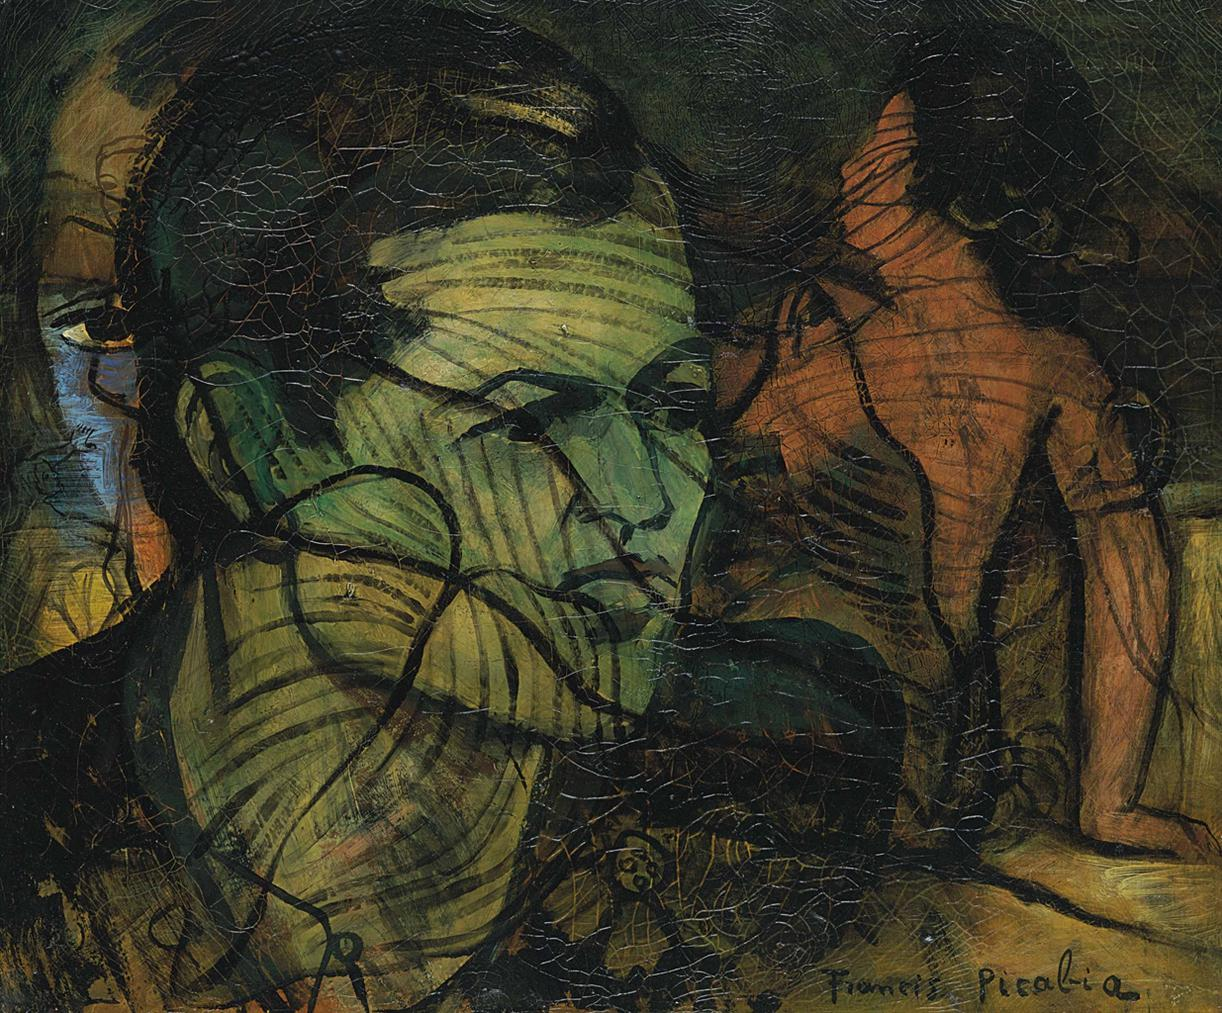 Francis Picabia-Transparence-1933